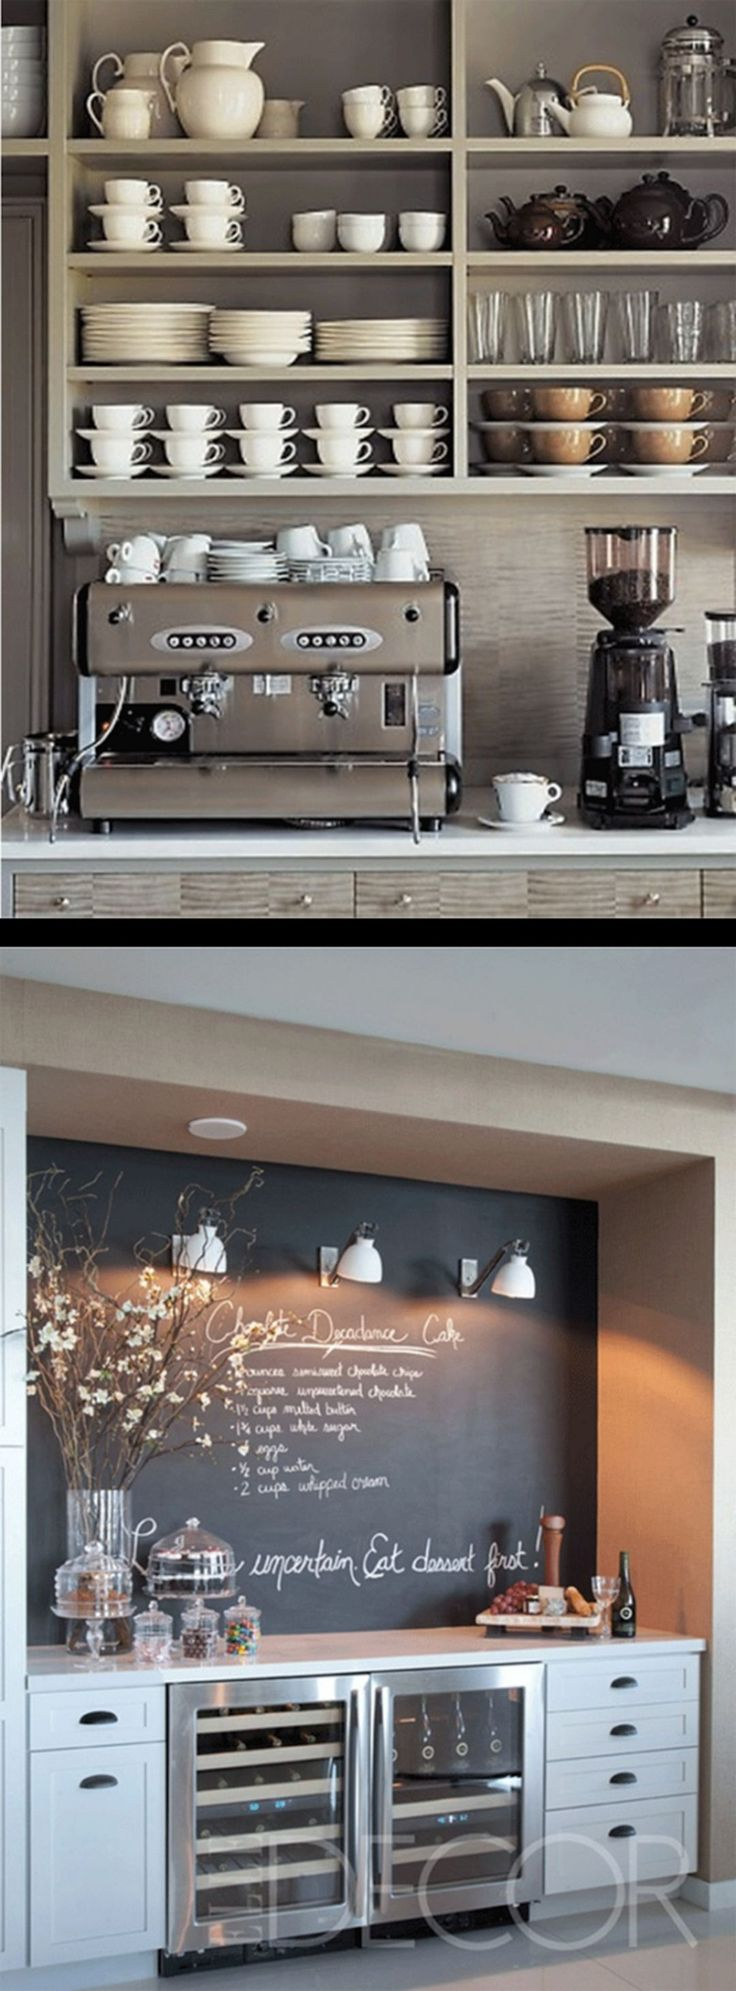 best 25 home coffee bars ideas on pinterest home coffee stations coffee bar ideas and coffe bar. Black Bedroom Furniture Sets. Home Design Ideas